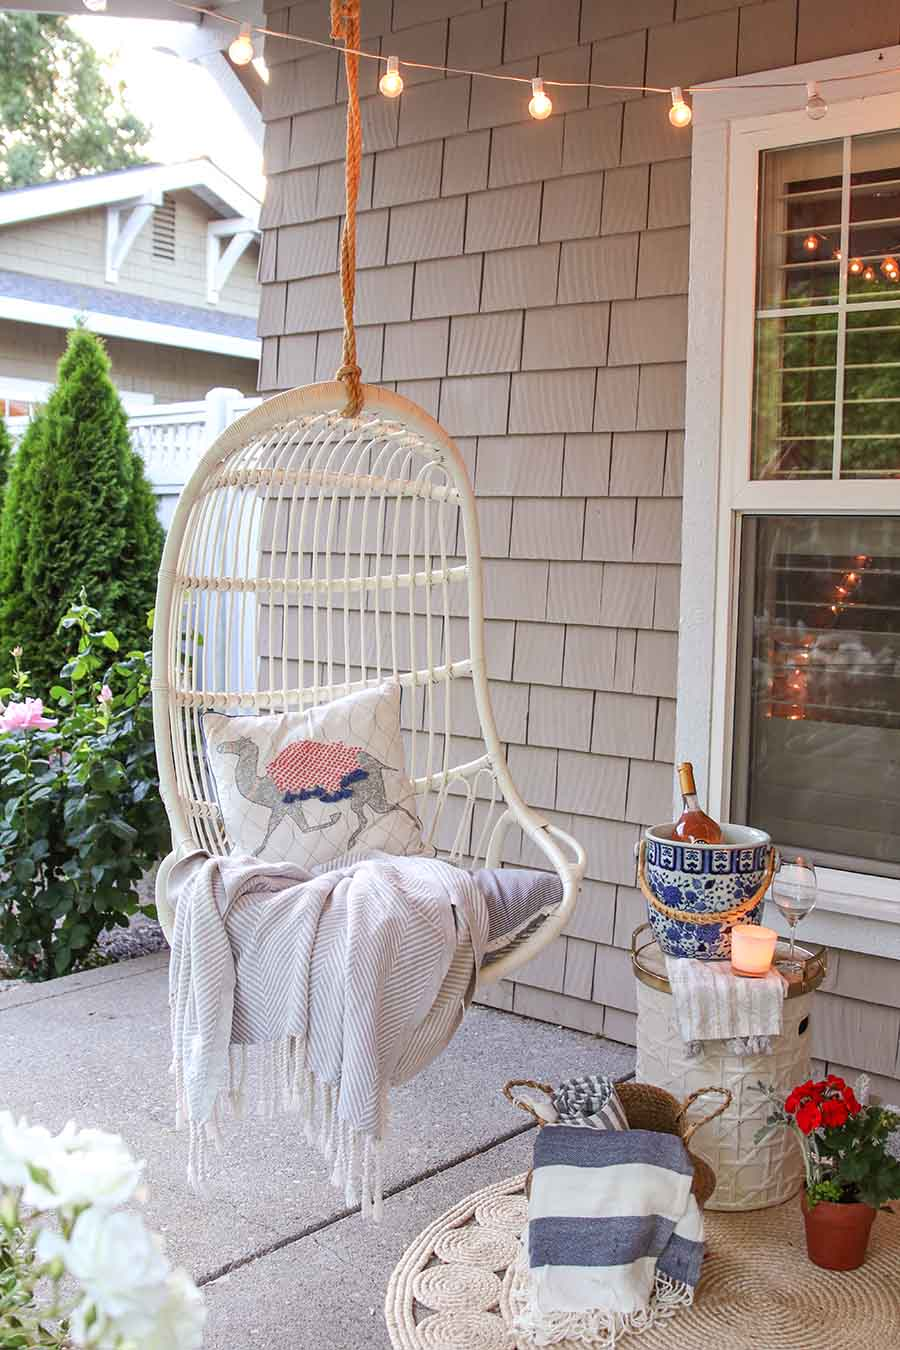 outdoor entertaining. front porch swing. summer front porch decor. summer front porch decorating